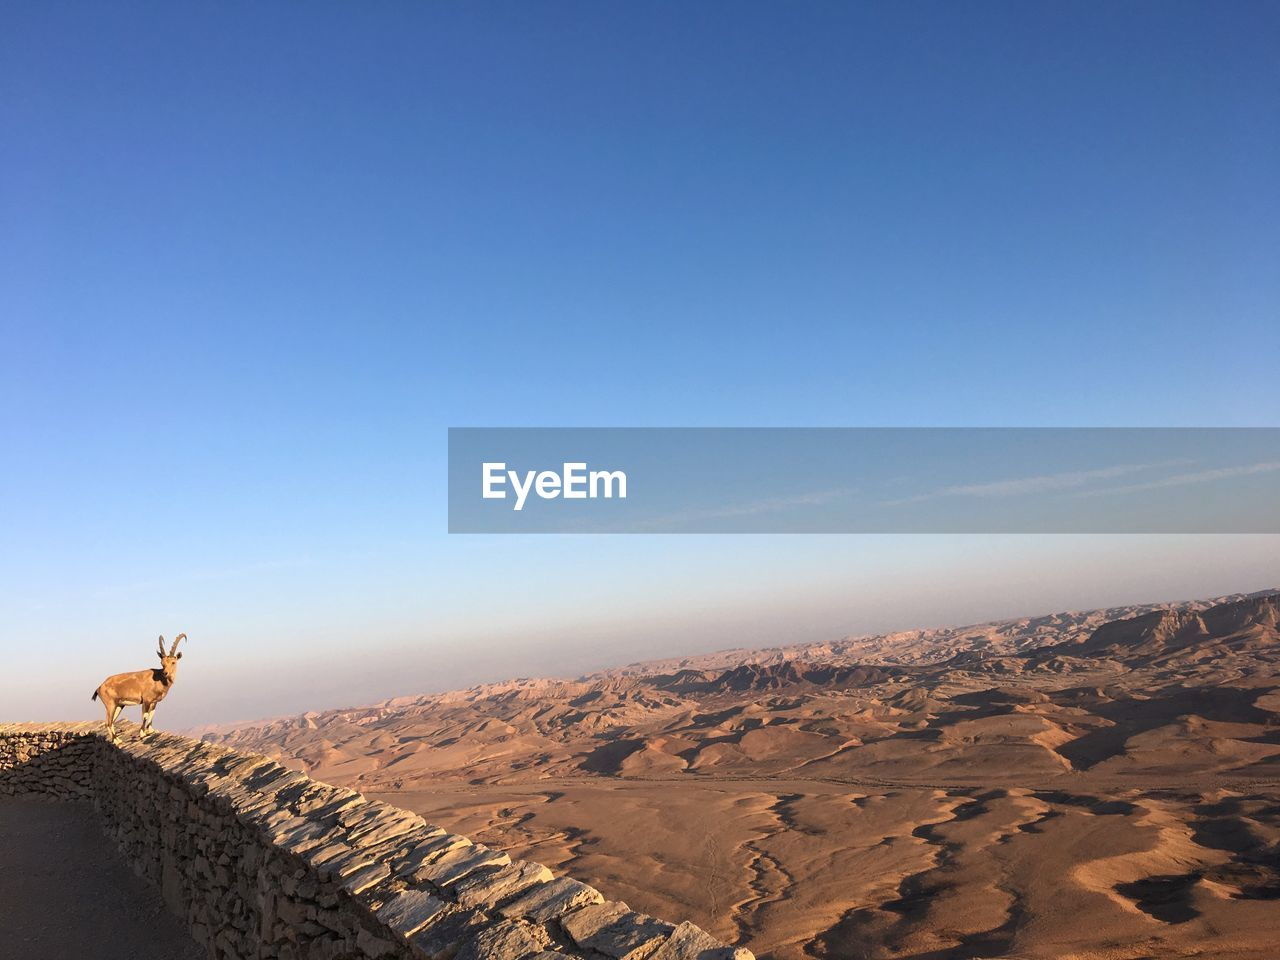 sky, scenics - nature, copy space, environment, landscape, beauty in nature, nature, non-urban scene, day, desert, tranquility, tranquil scene, clear sky, climate, arid climate, blue, remote, sunlight, no people, idyllic, outdoors